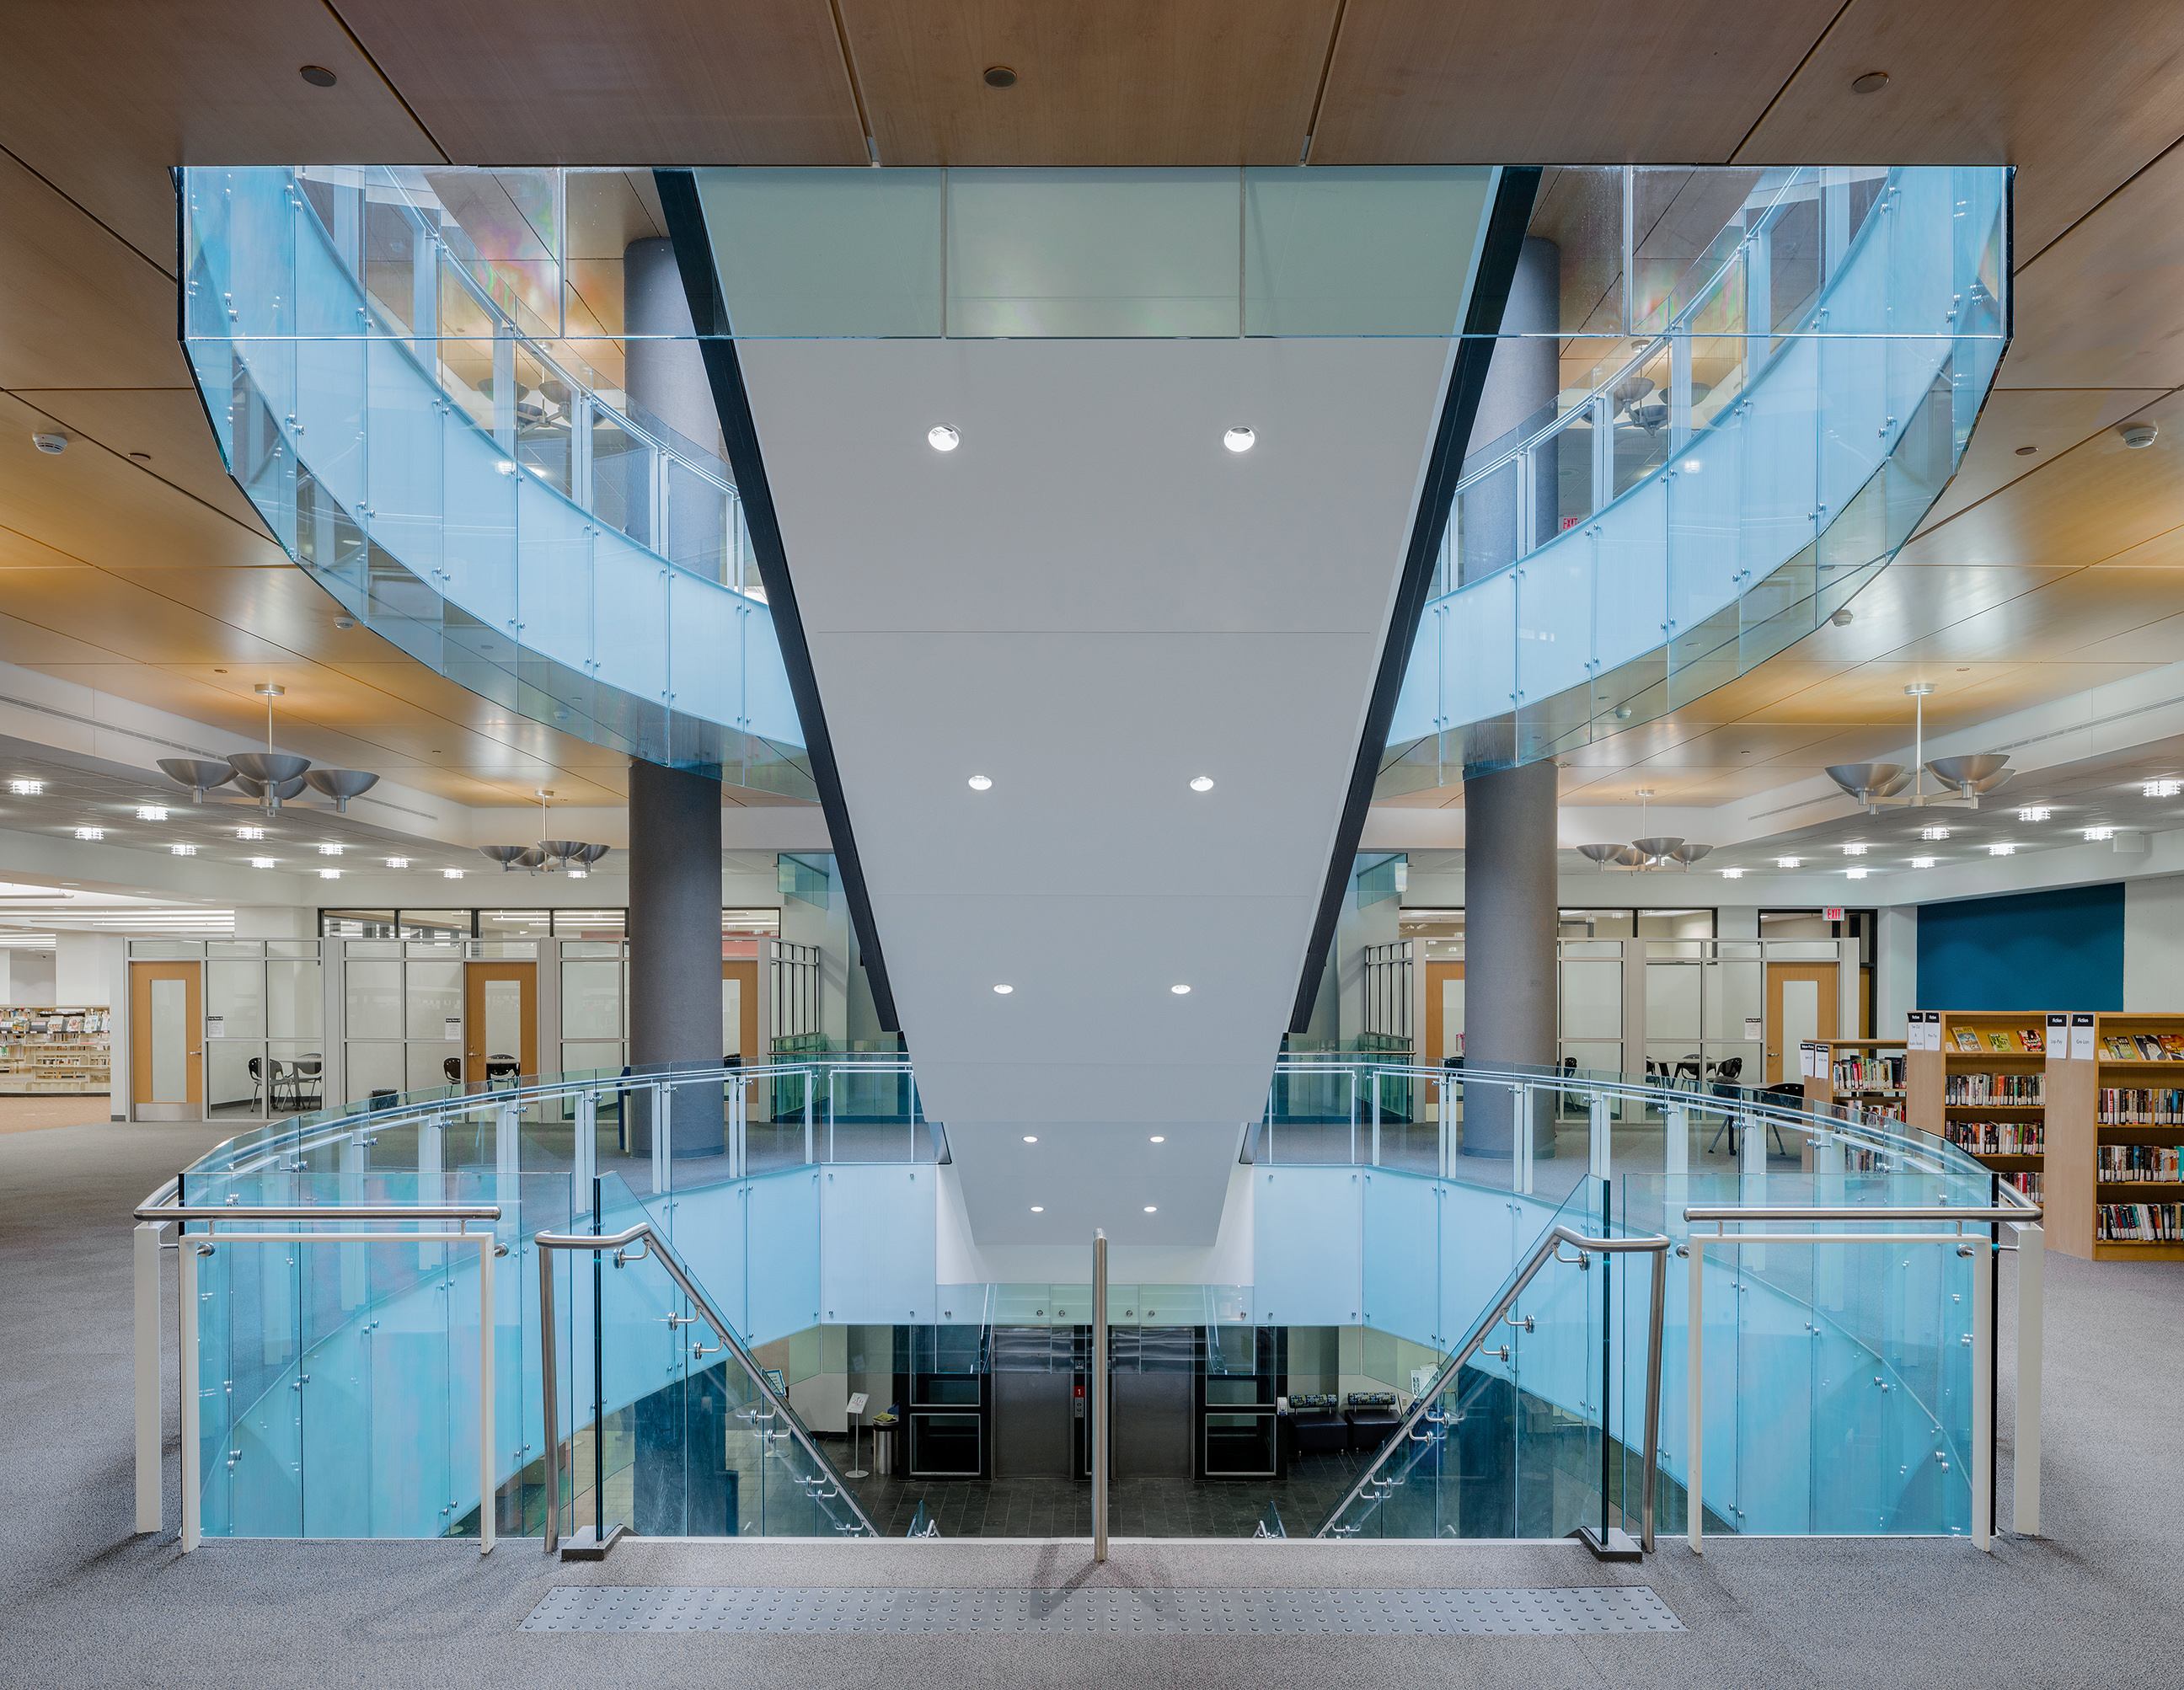 Interior photography of London Public Library by architectural photographer Scott Webb